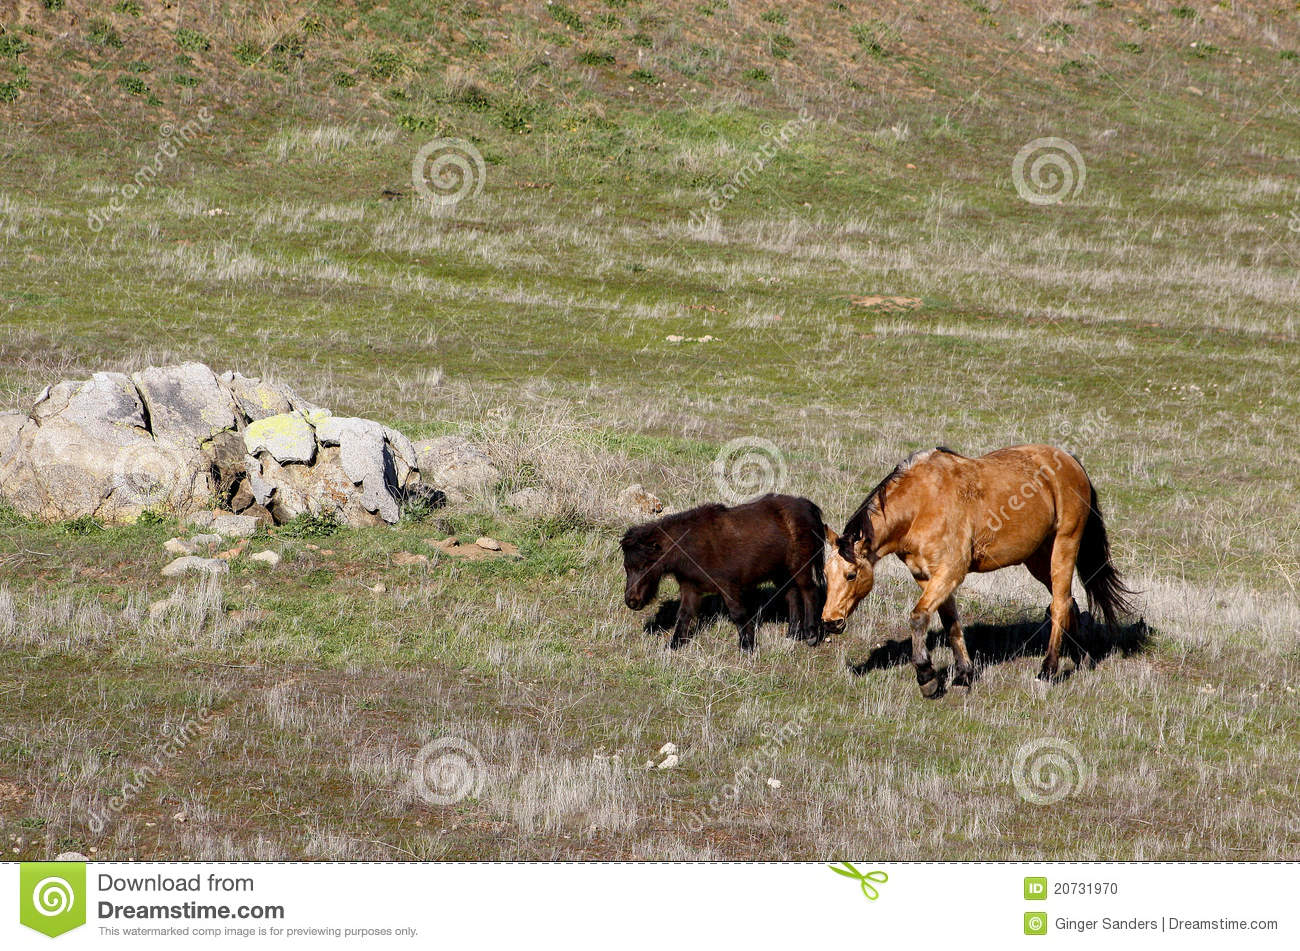 Two Miniature Horses Grazing in A Field